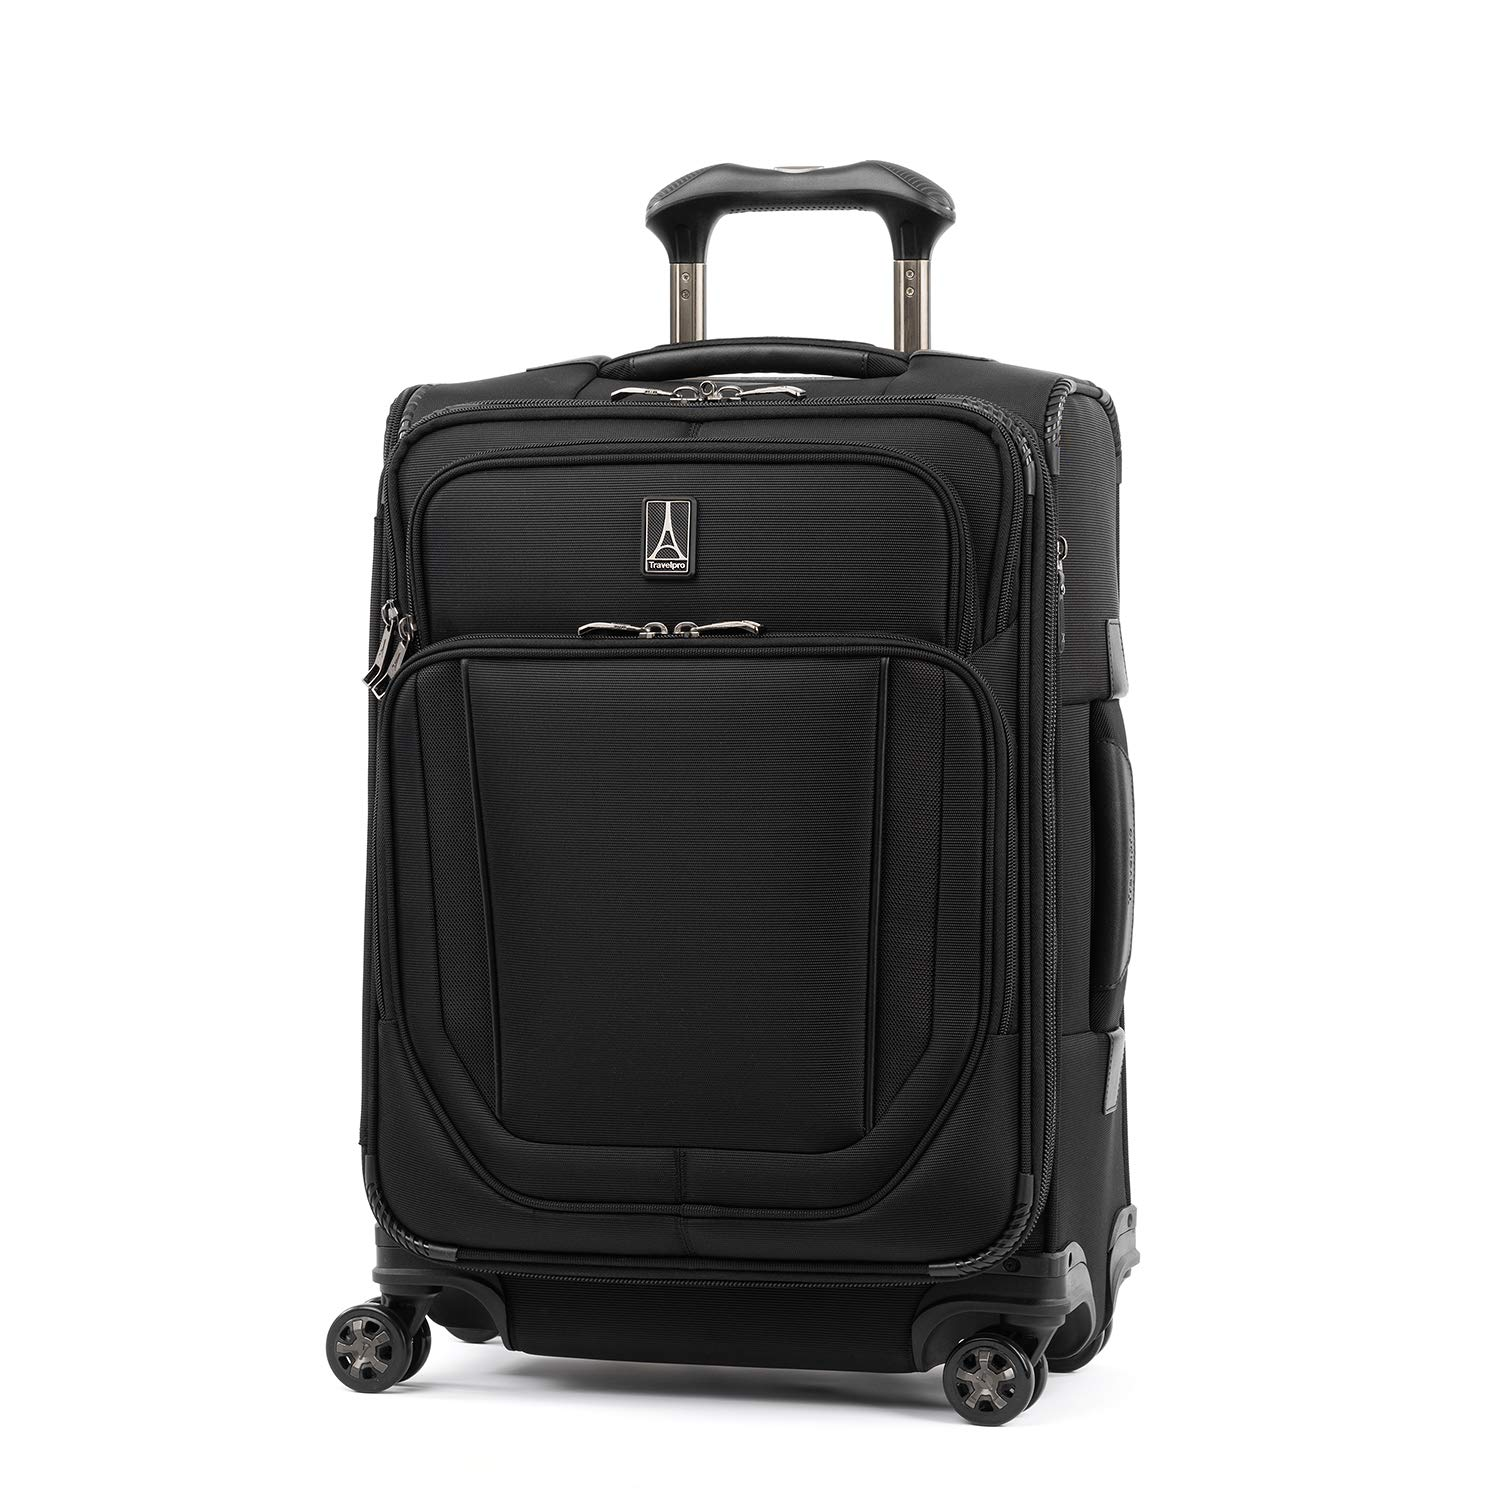 Travelpro Carry-On, Jet Black by Travelpro